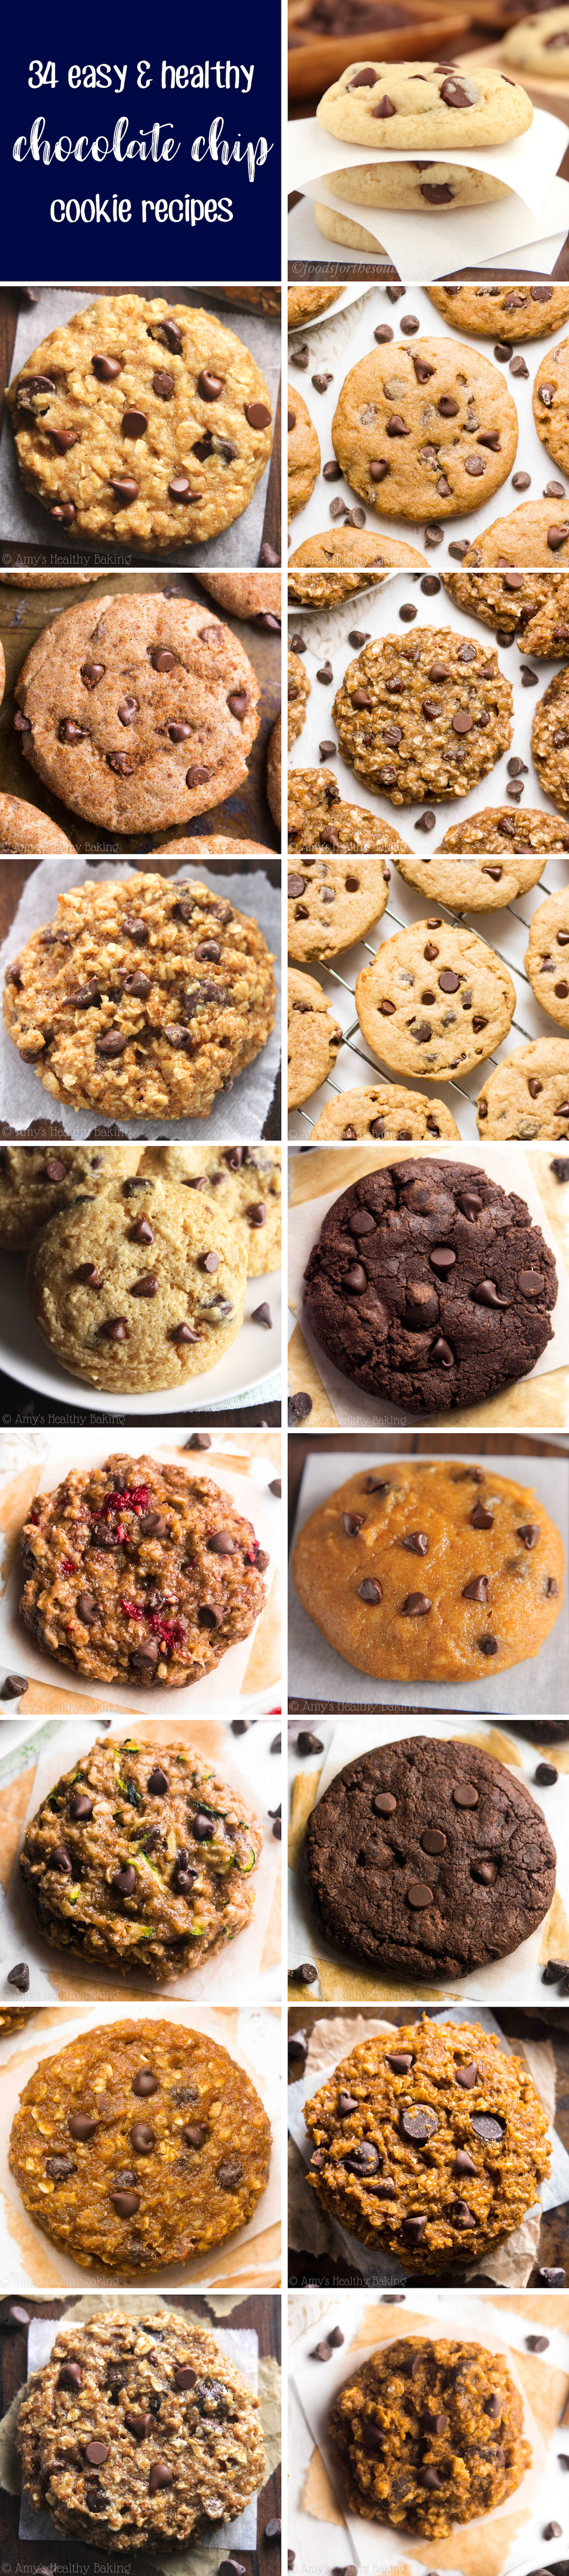 34 Easy & Healthy Chocolate Chip Cookie Recipes (Low Fat & Low Calorie)